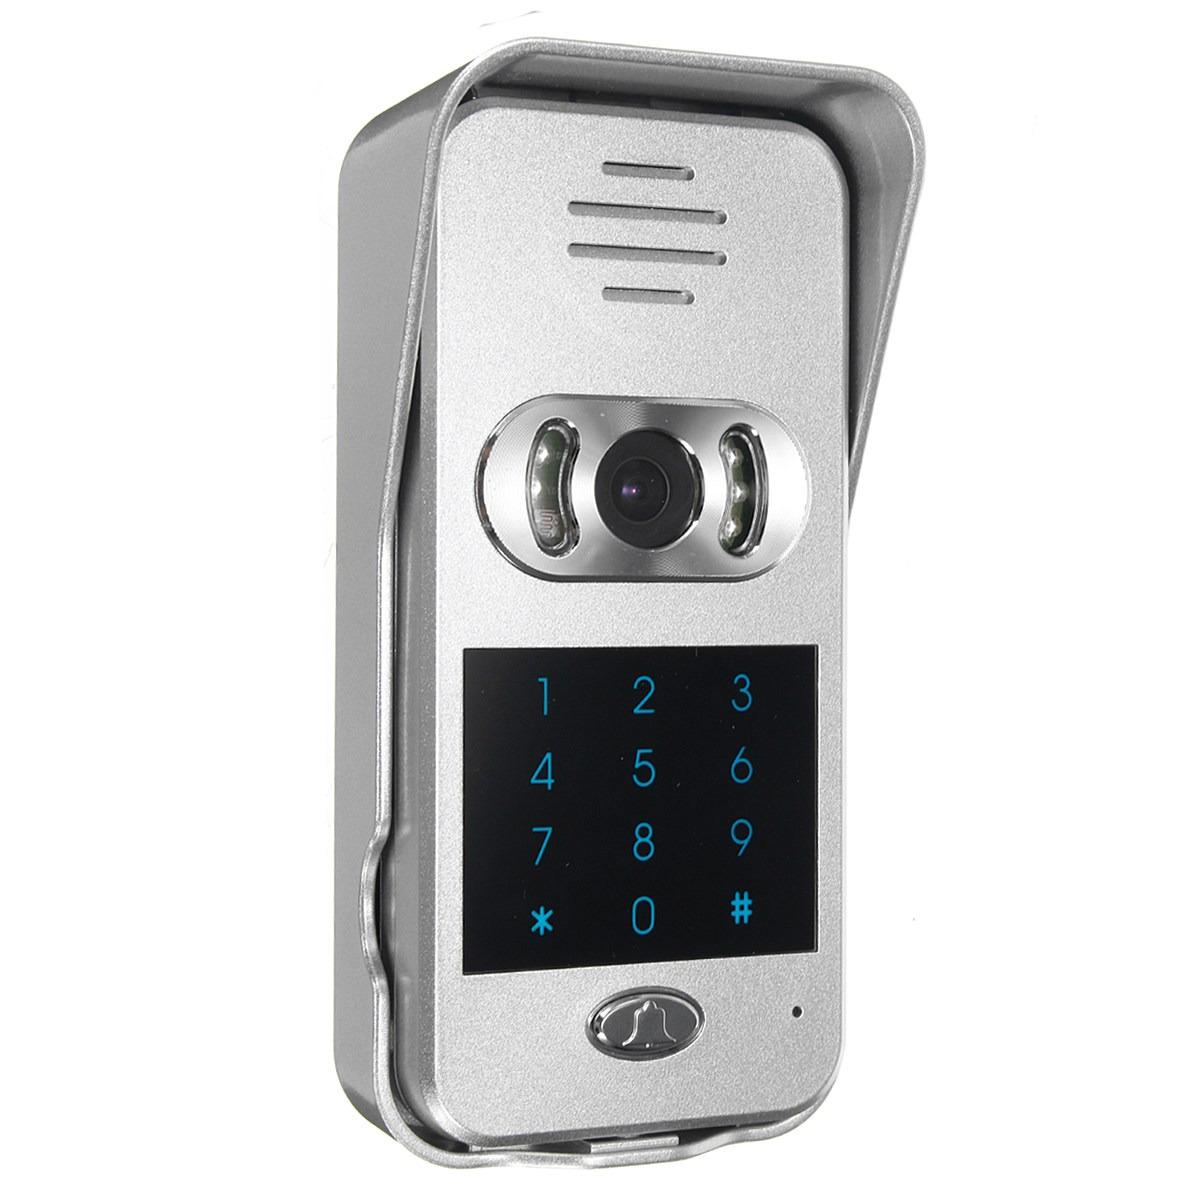 Safurance Wireless WiFi Video Doorbell IR Camera Smart Door Phone Visual Intercom Monitor Home Security wireless wifi